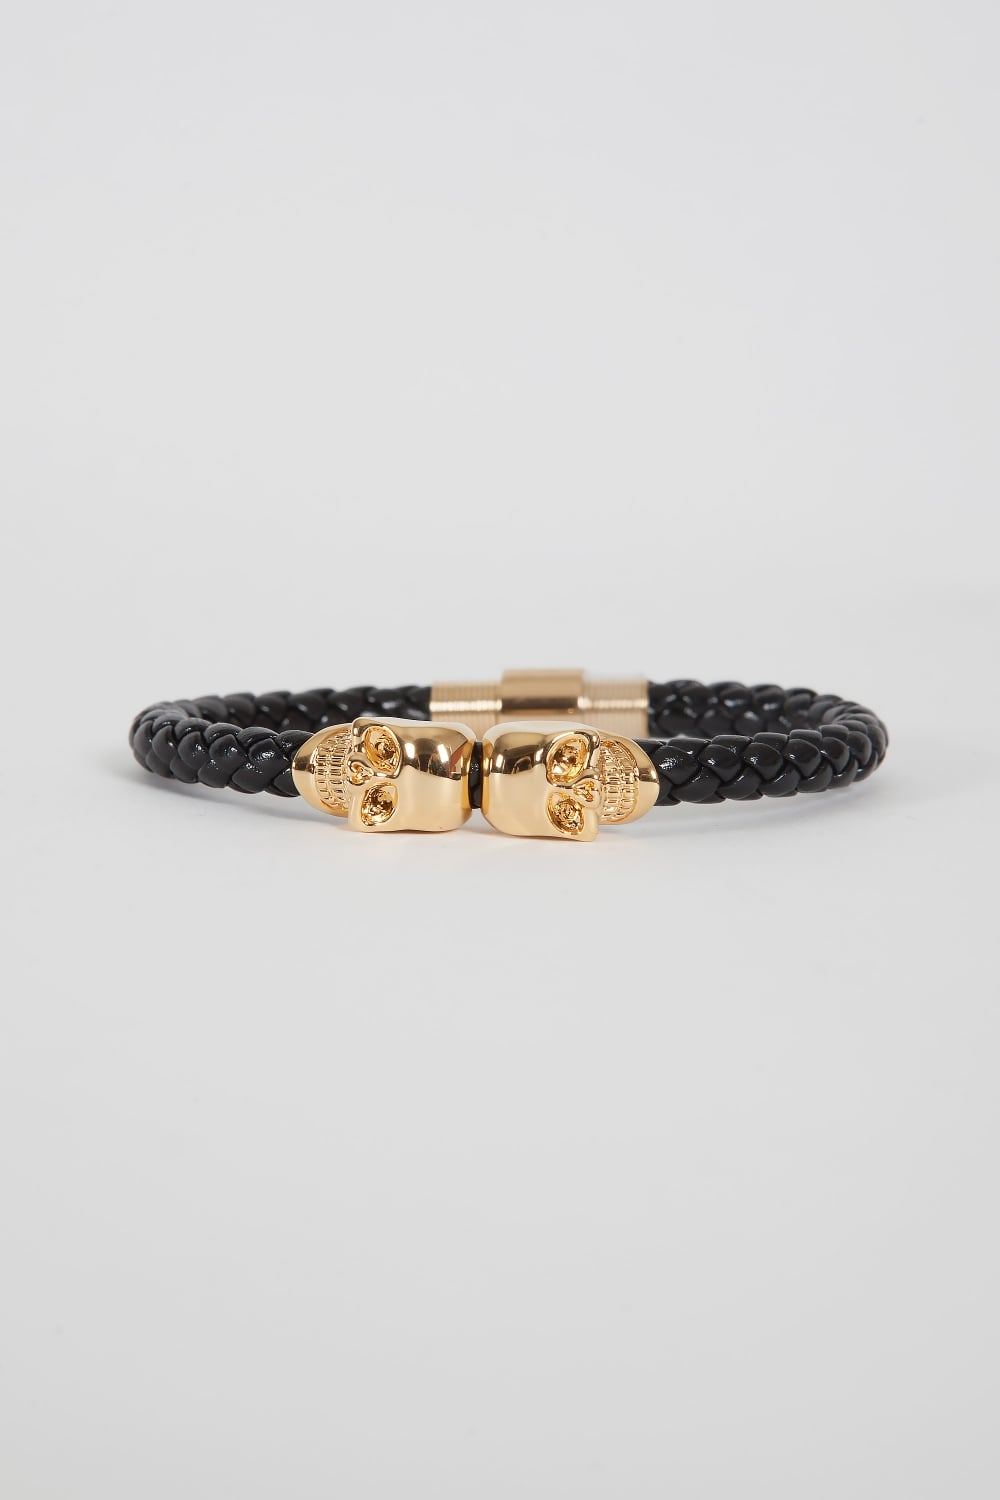 of friendship amp gold vermeil mini cord london and en hires links bracelet rose eu black